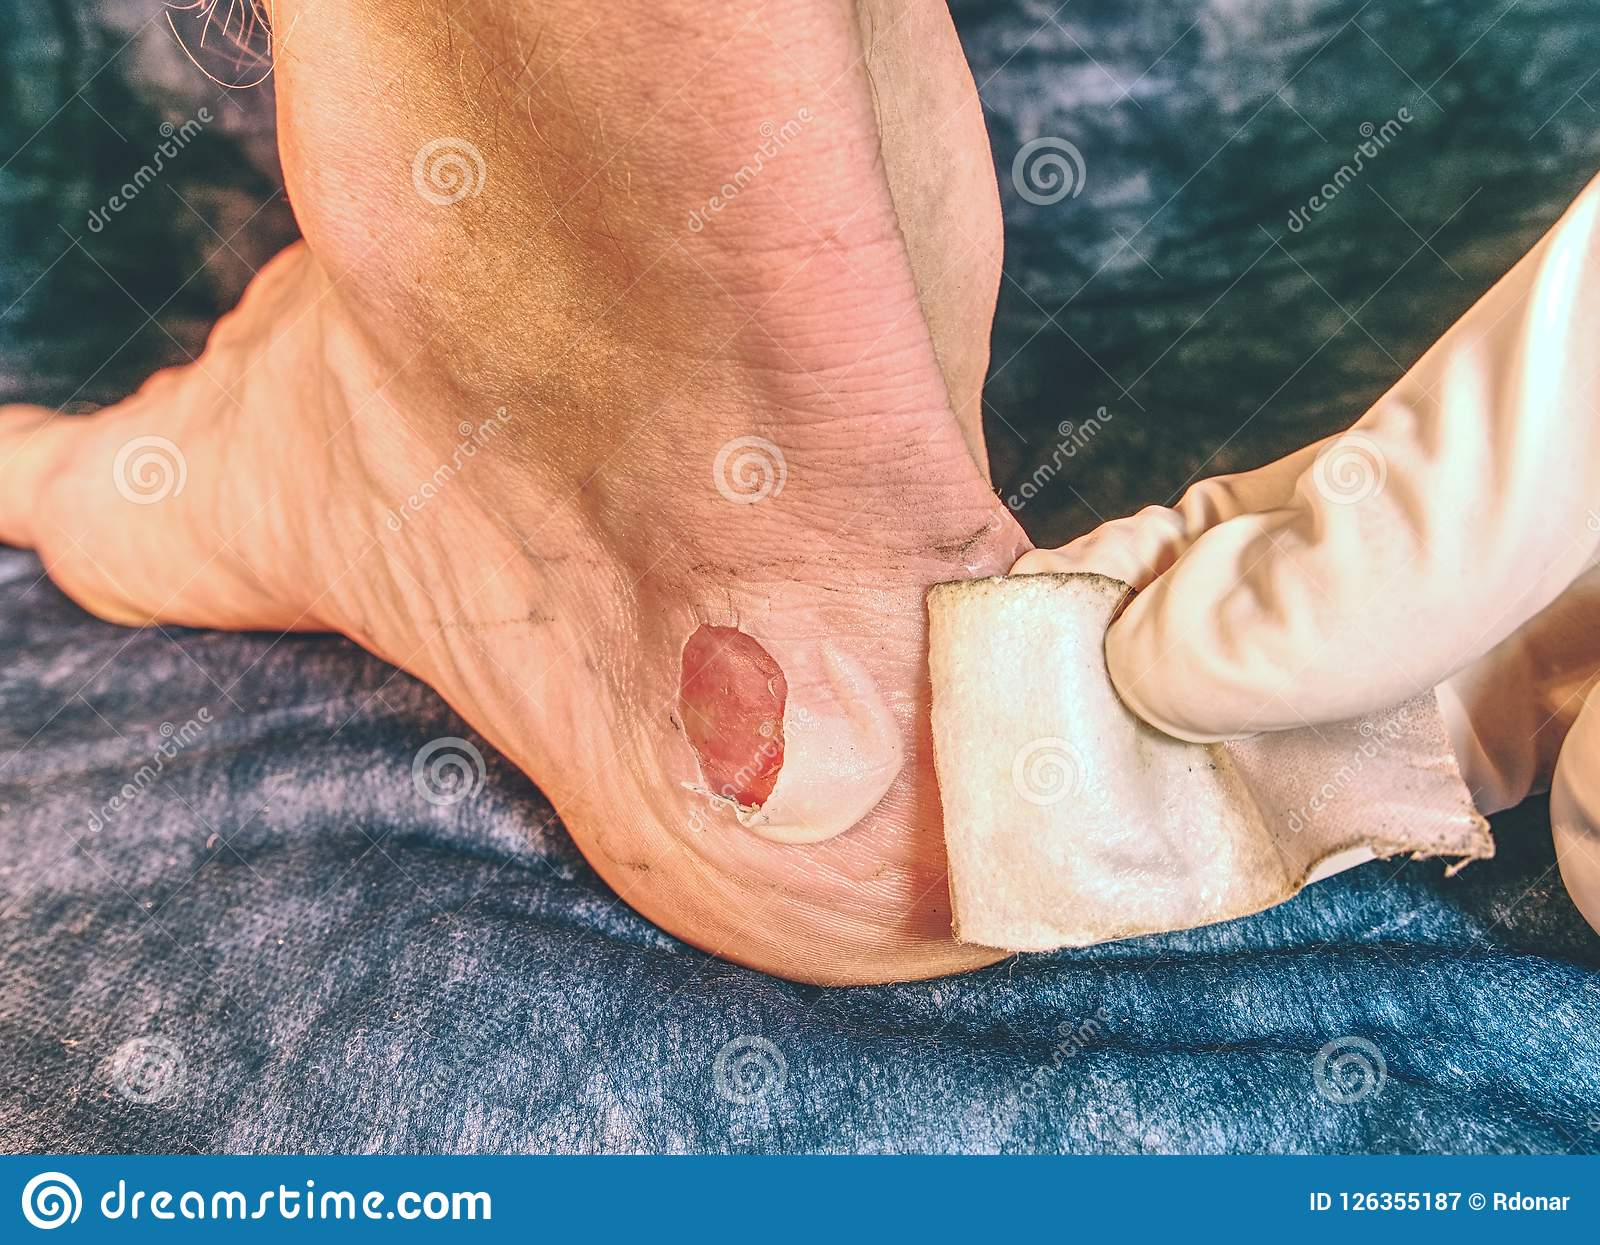 MMedical Treatment Of Dead Skin And Wet Abrasions On The